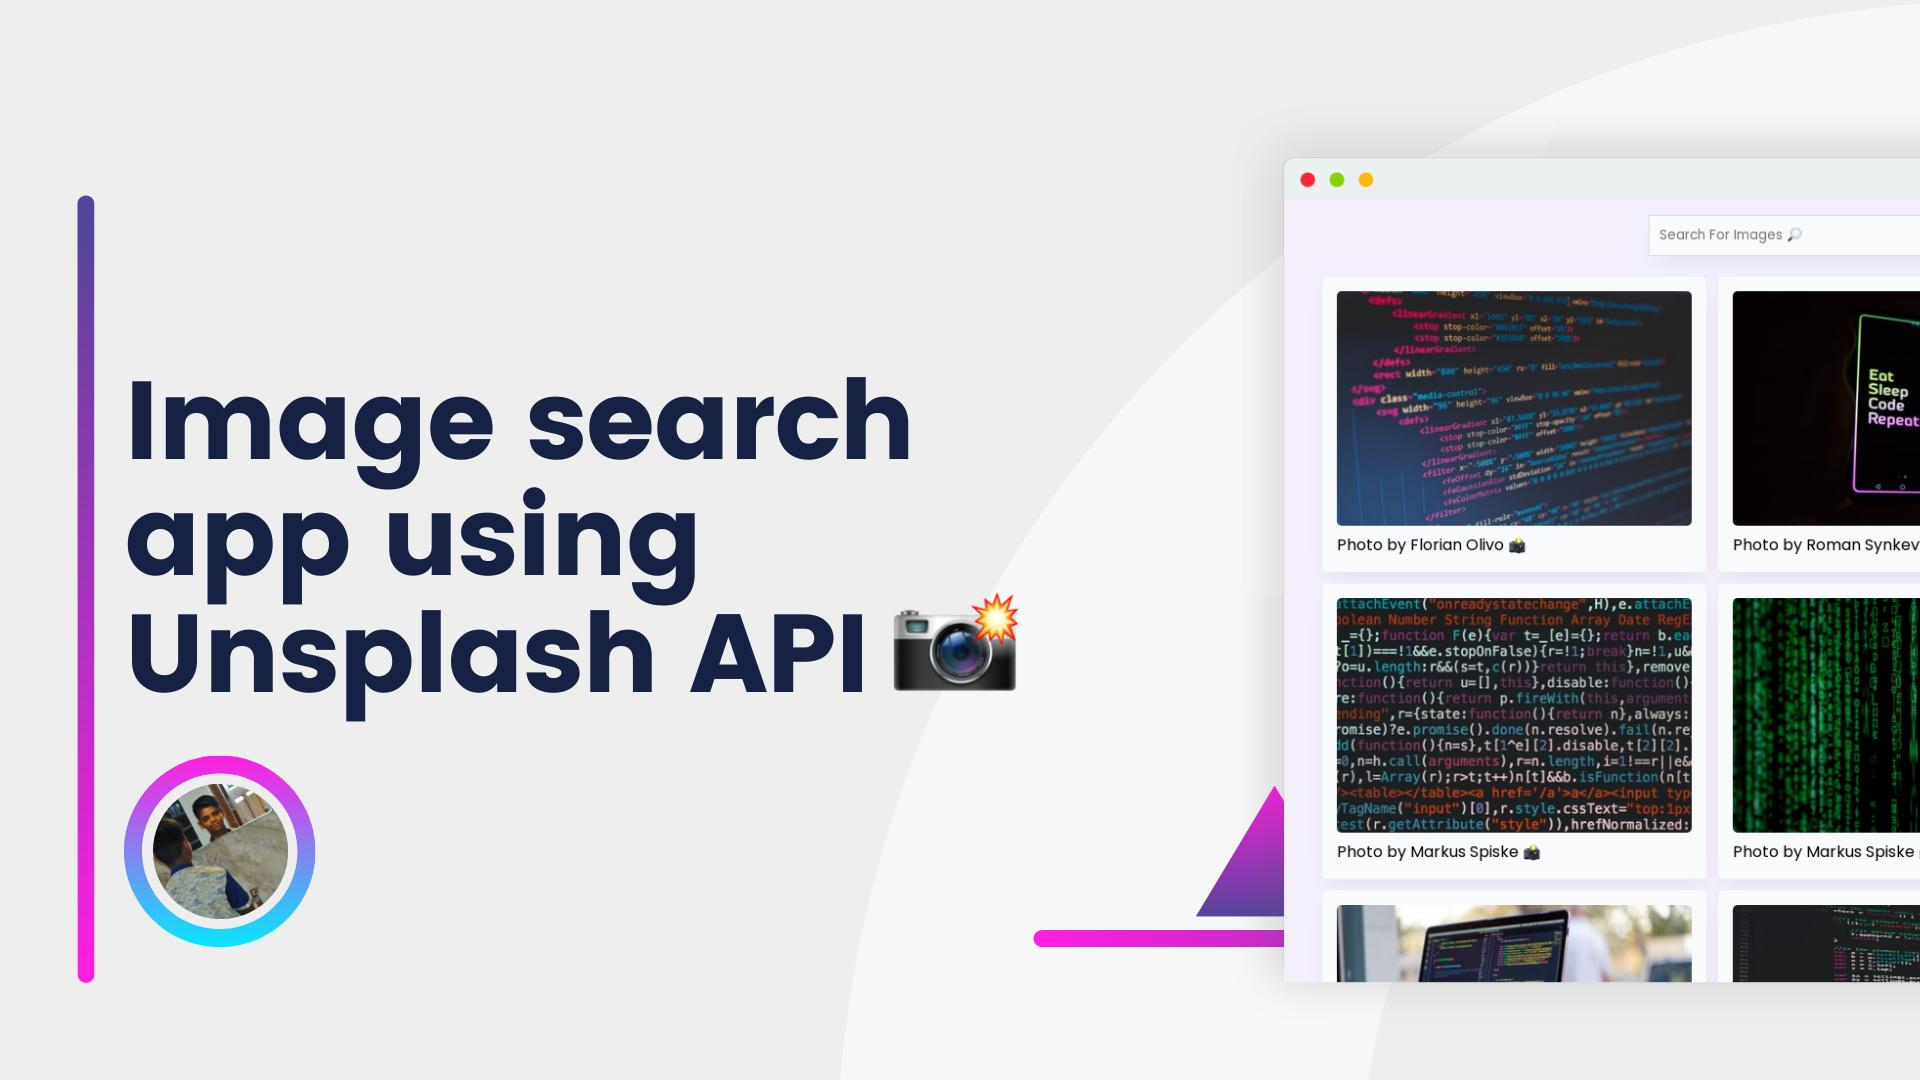 Creating an Image search app using Unsplash API with infinite scrolling 📸